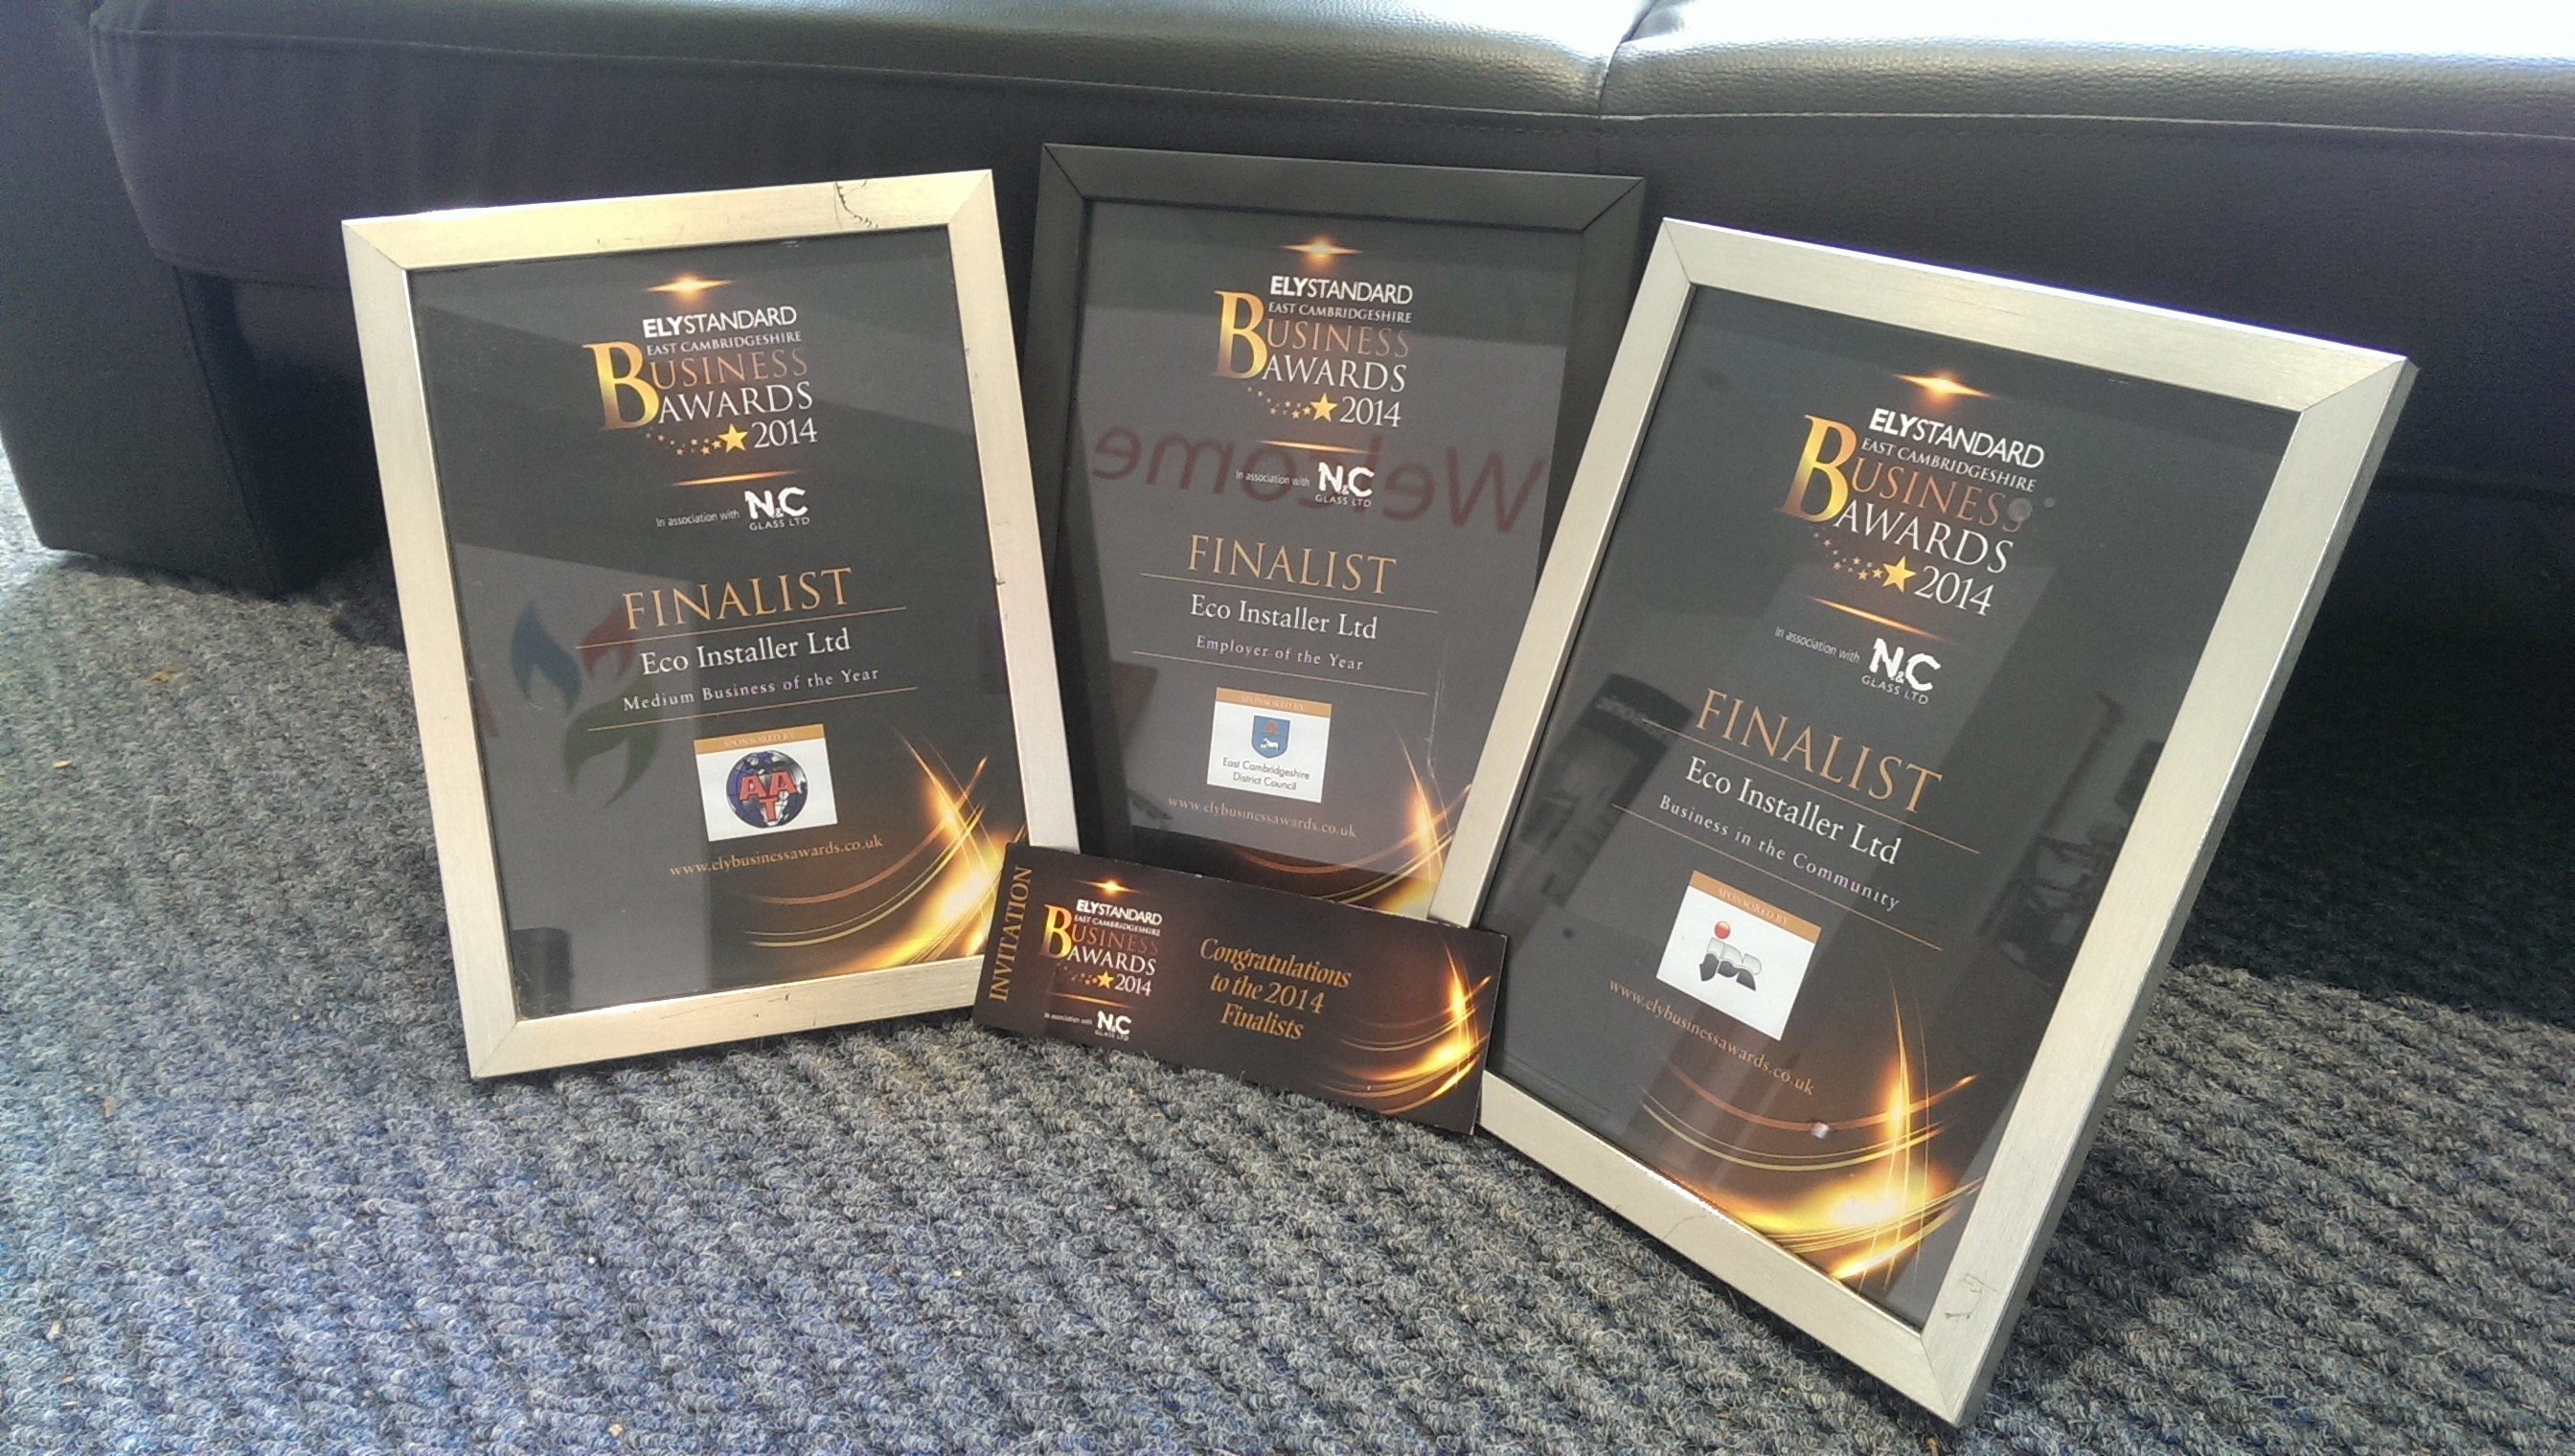 Ely-Business-Awards-Finalists-2014-Eco-Installer